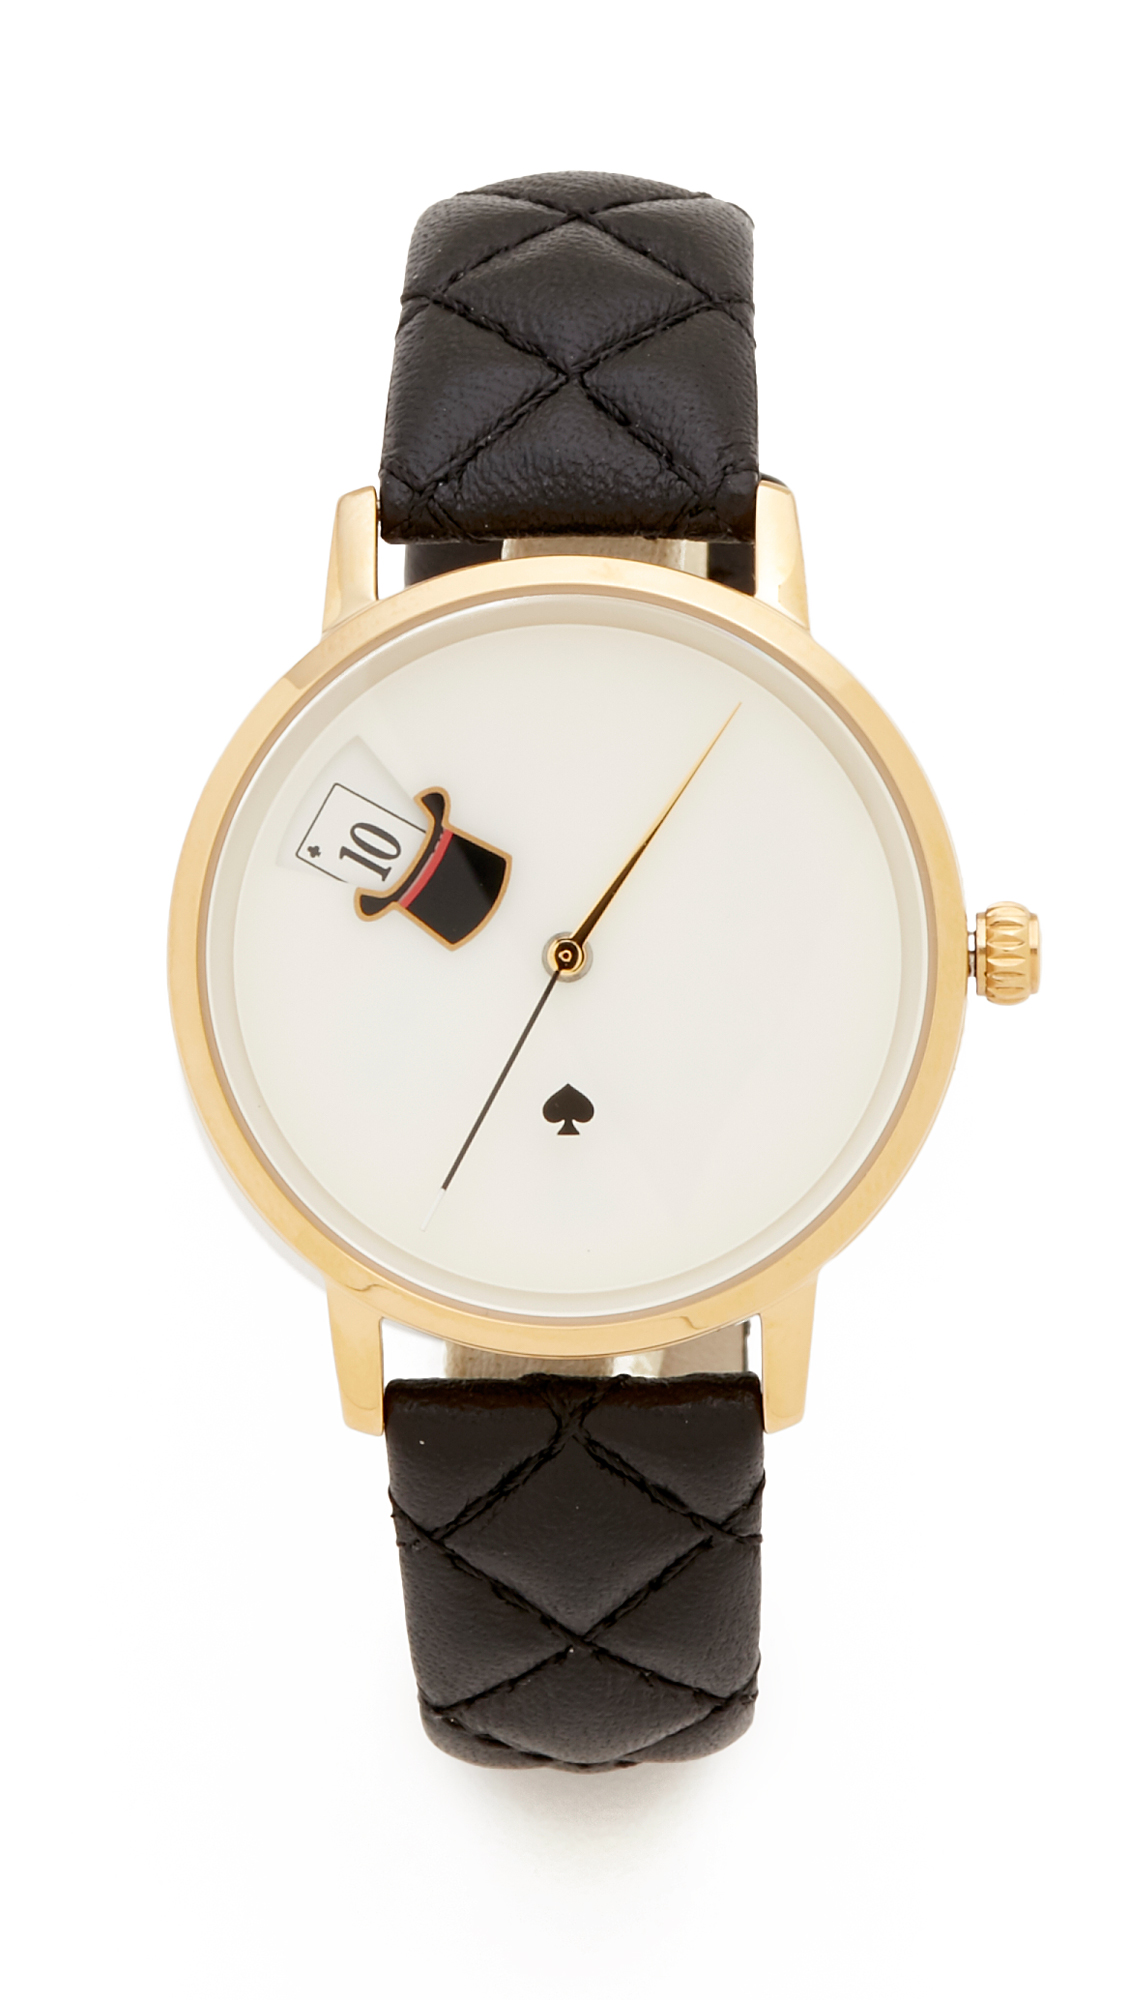 Kate Spade New York Magic Hat Quilted Metro Watch - Black/Gold at Shopbop